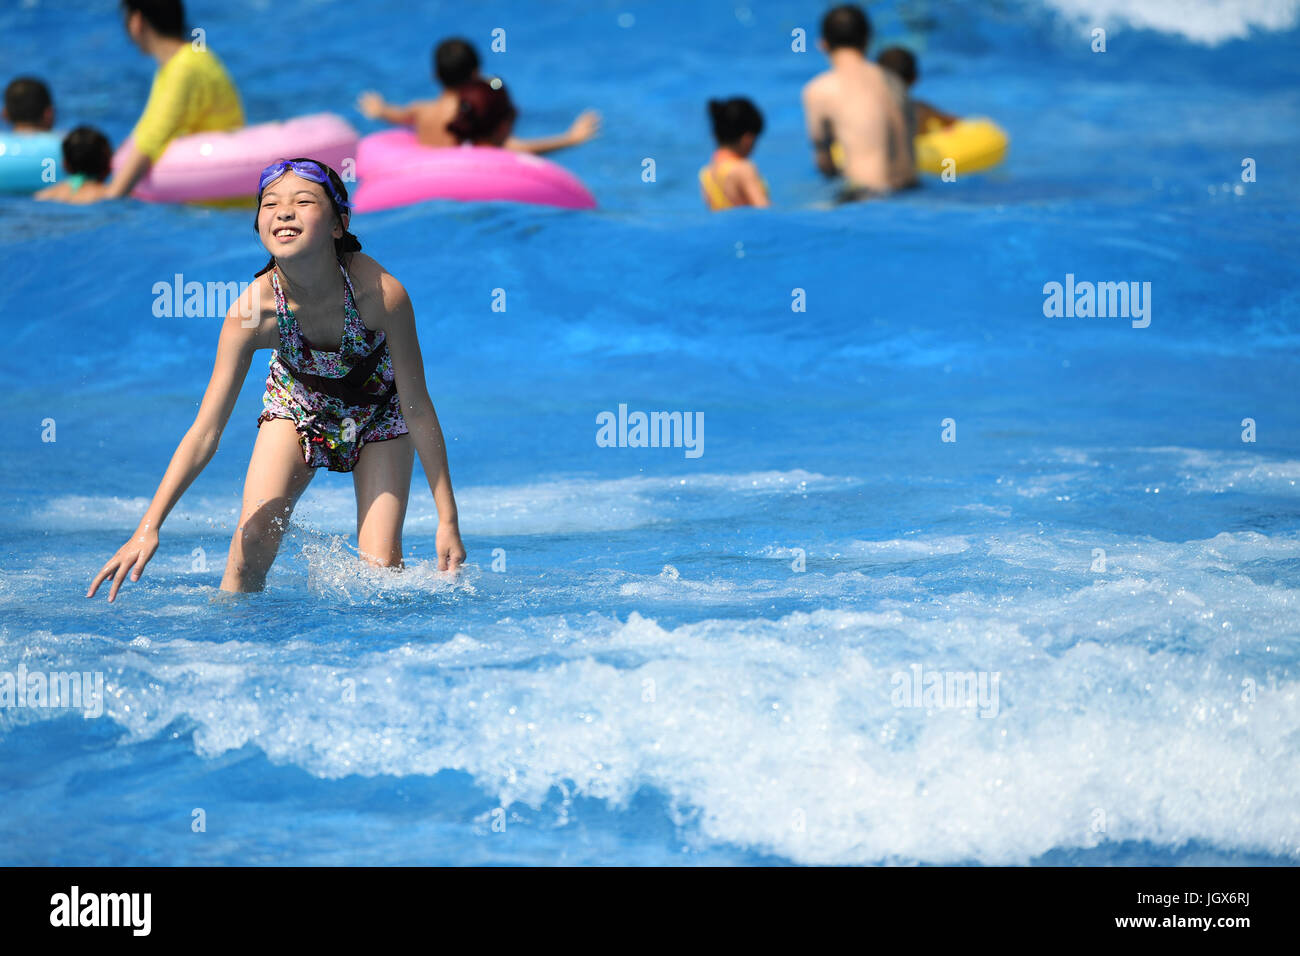 Chongqing, China. 11th Jul, 2017. A girl played in water to keep cool in a water park in Chongqing, July 11, 2017. - Stock Image